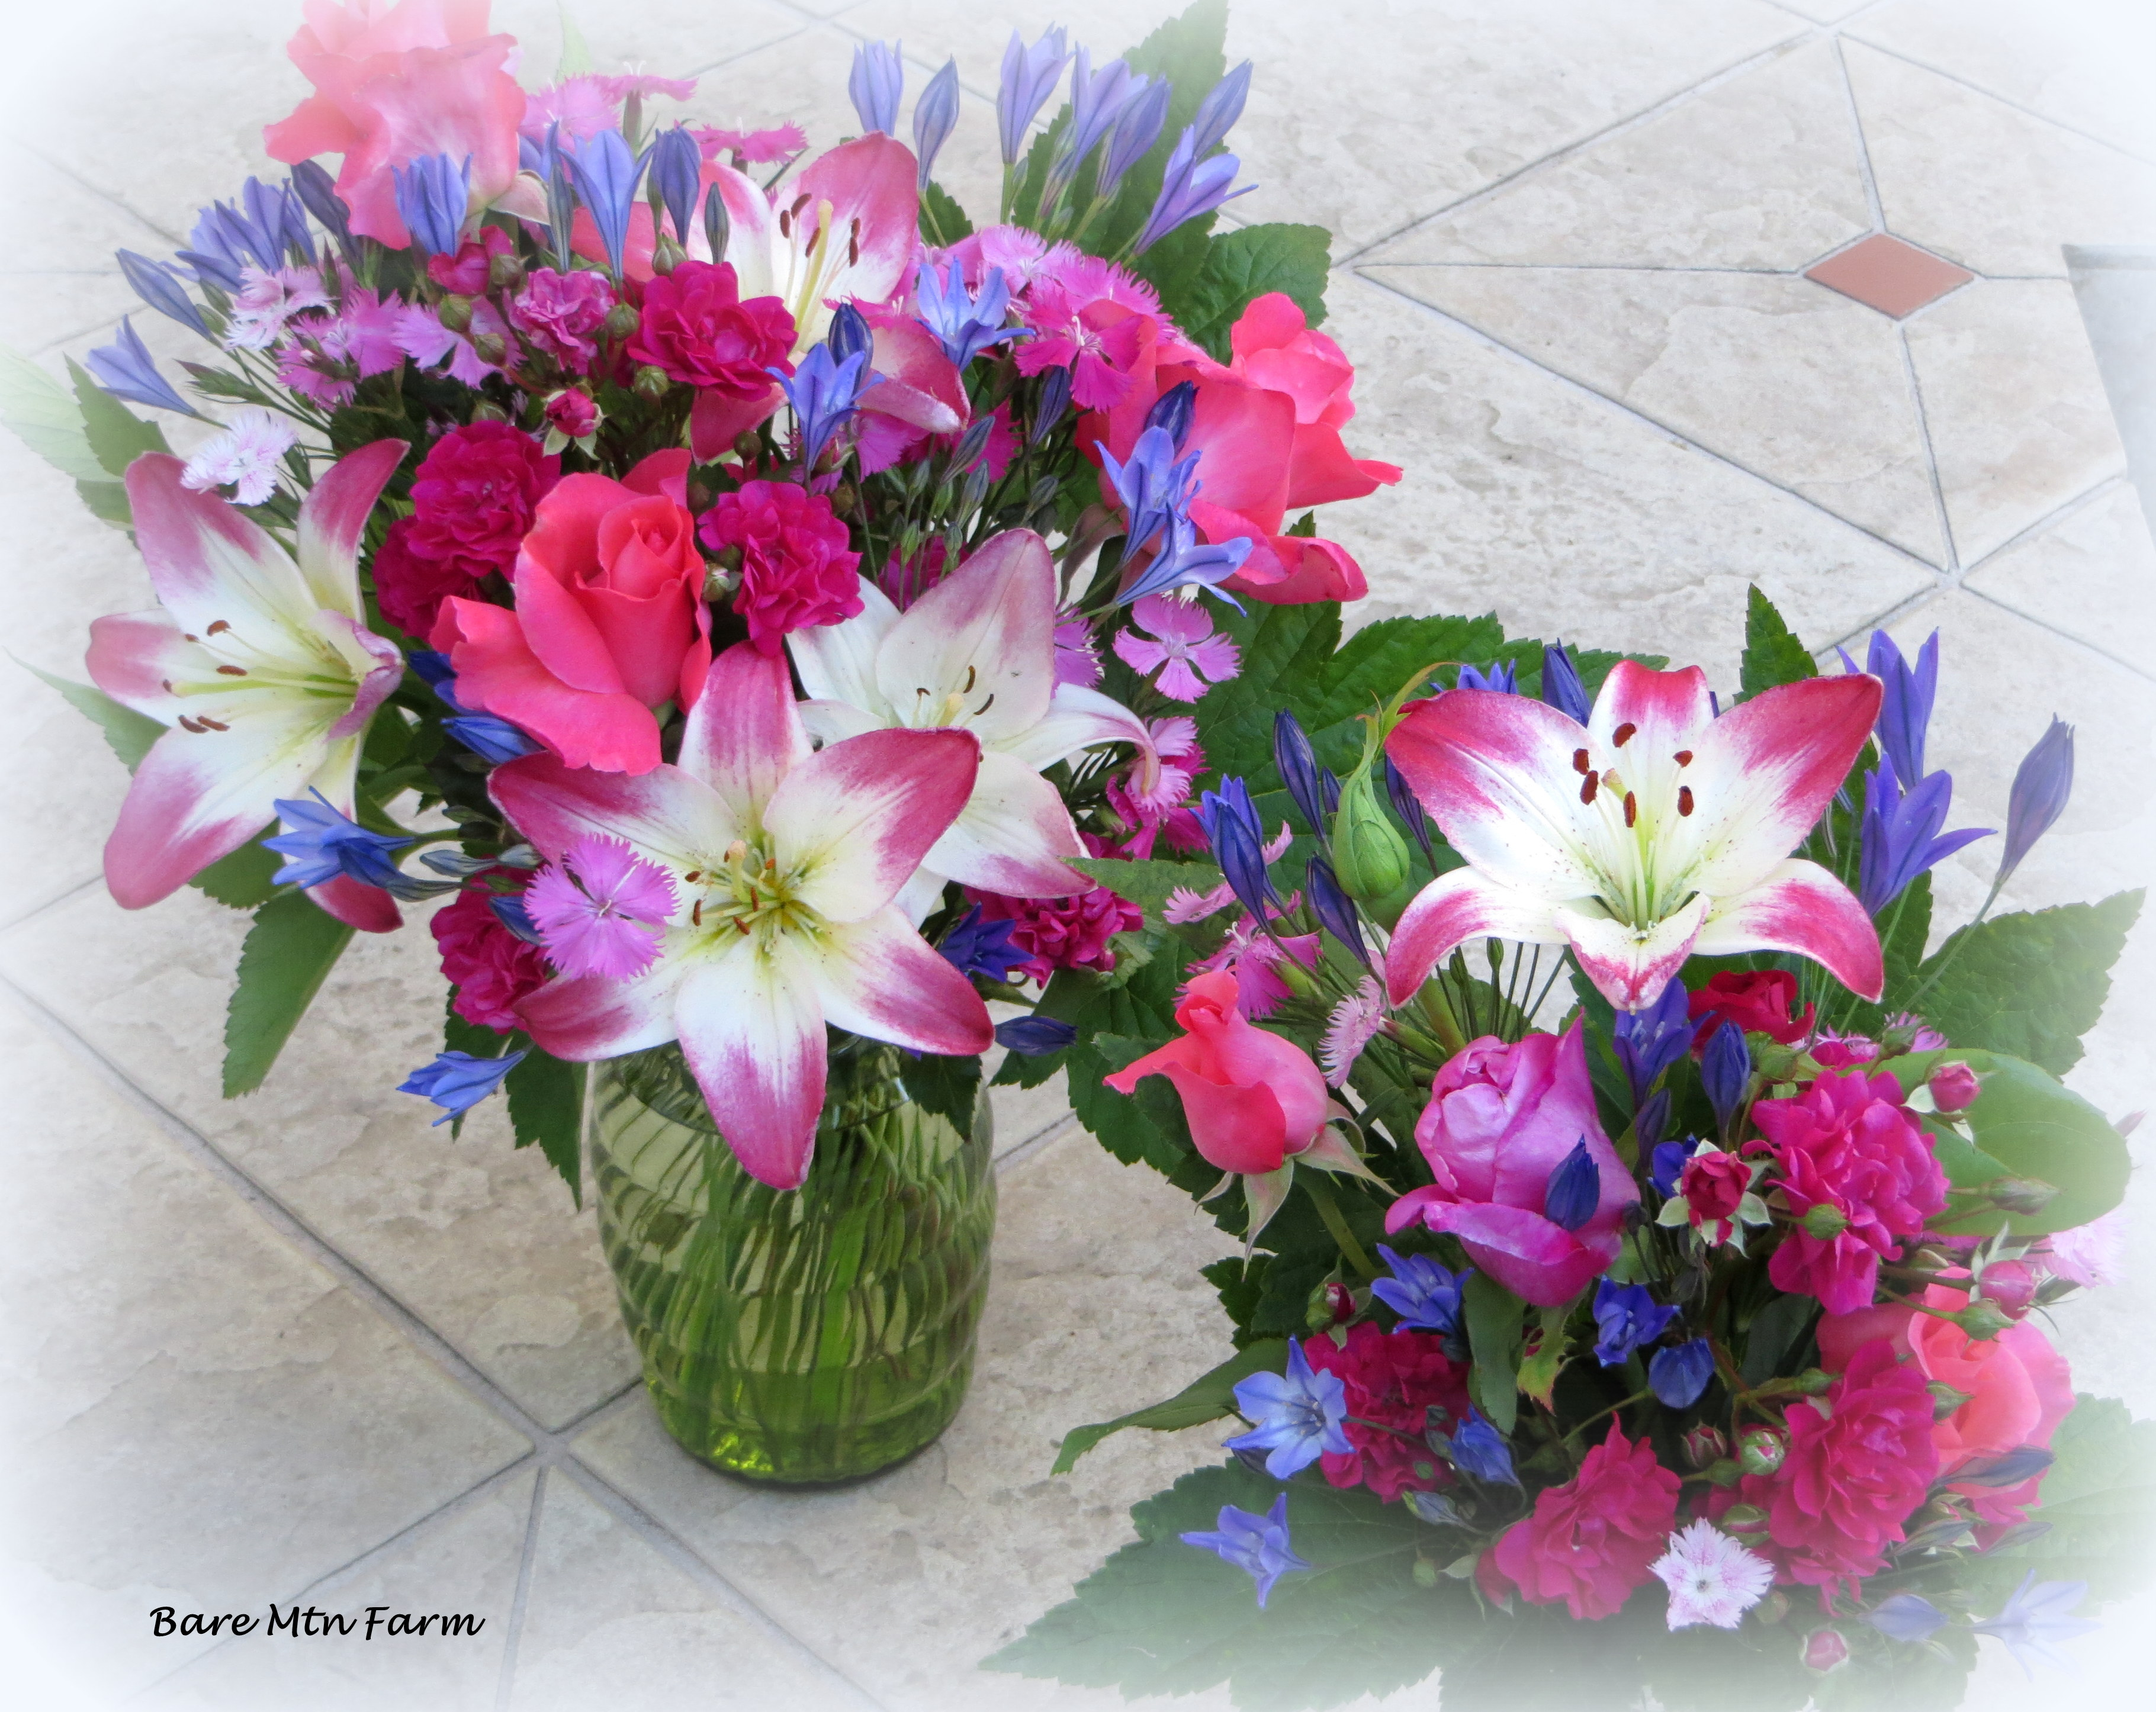 Birthday flowers welcome to bare mtn farm november 19 2014 3641 2892 event flowers birthday flowers izmirmasajfo